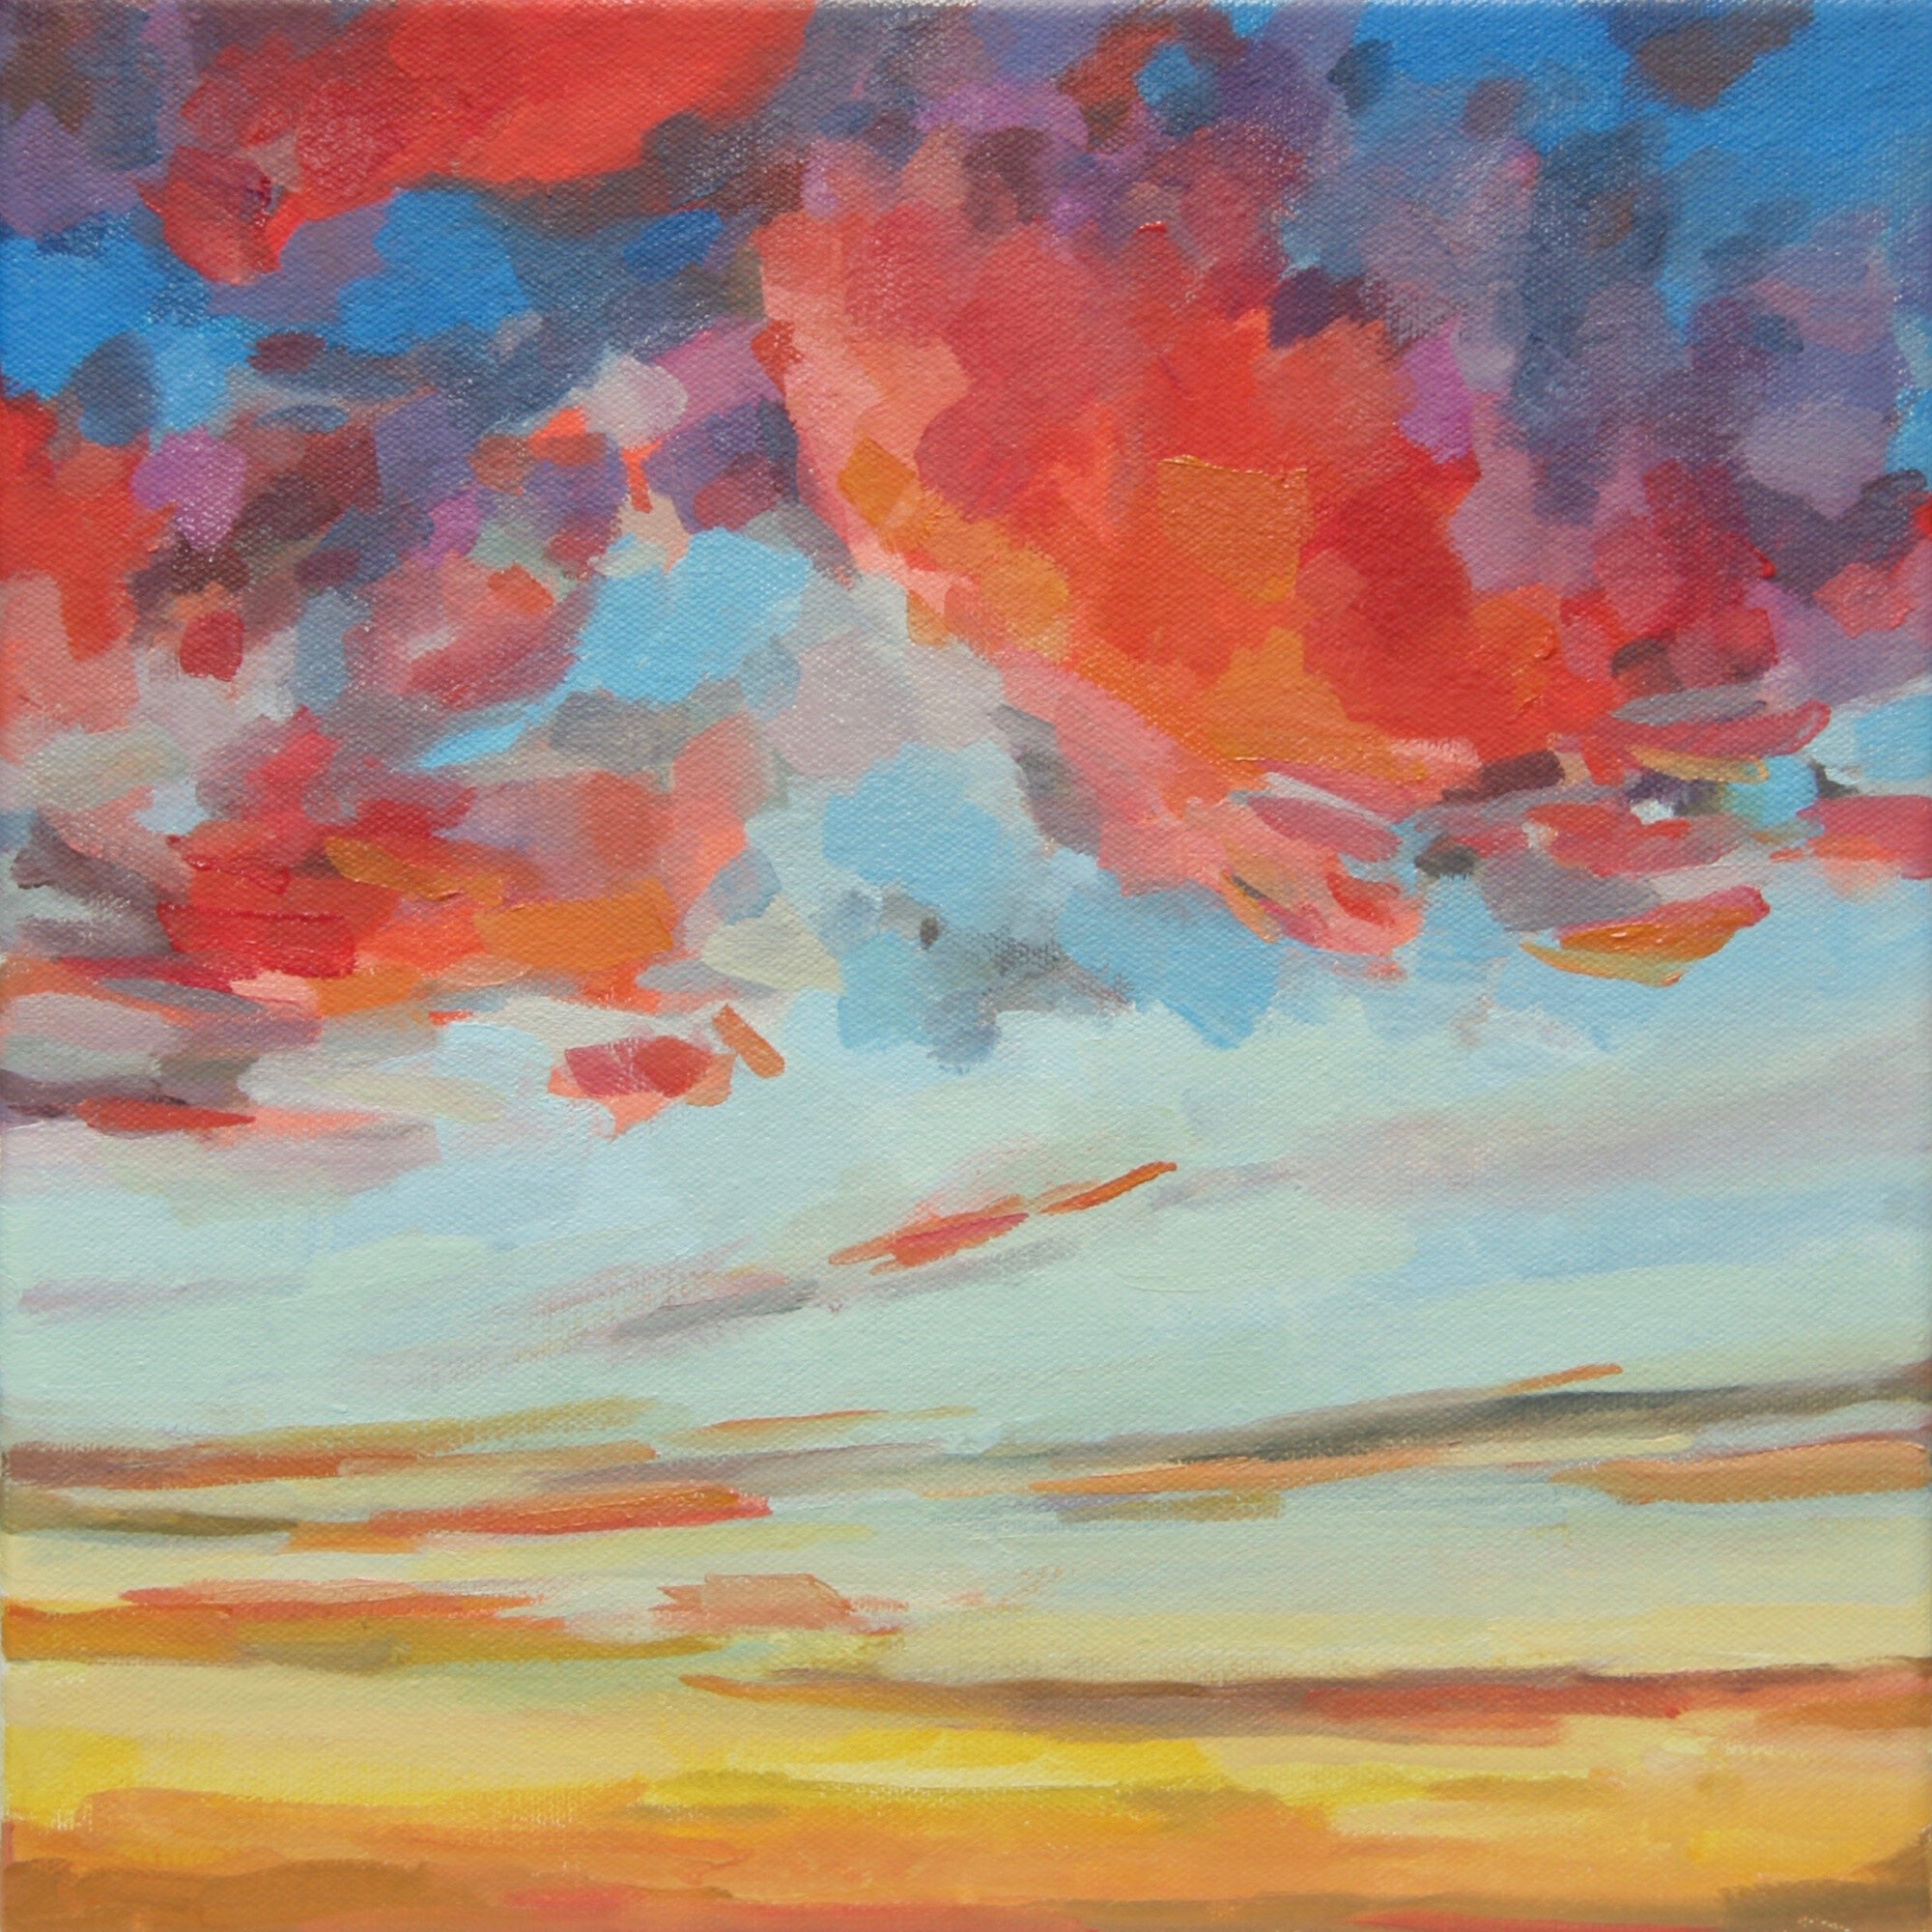 """'Sorbet Sky'  2015  12"""" x 12""""  water soluble oil on canvas  sold"""